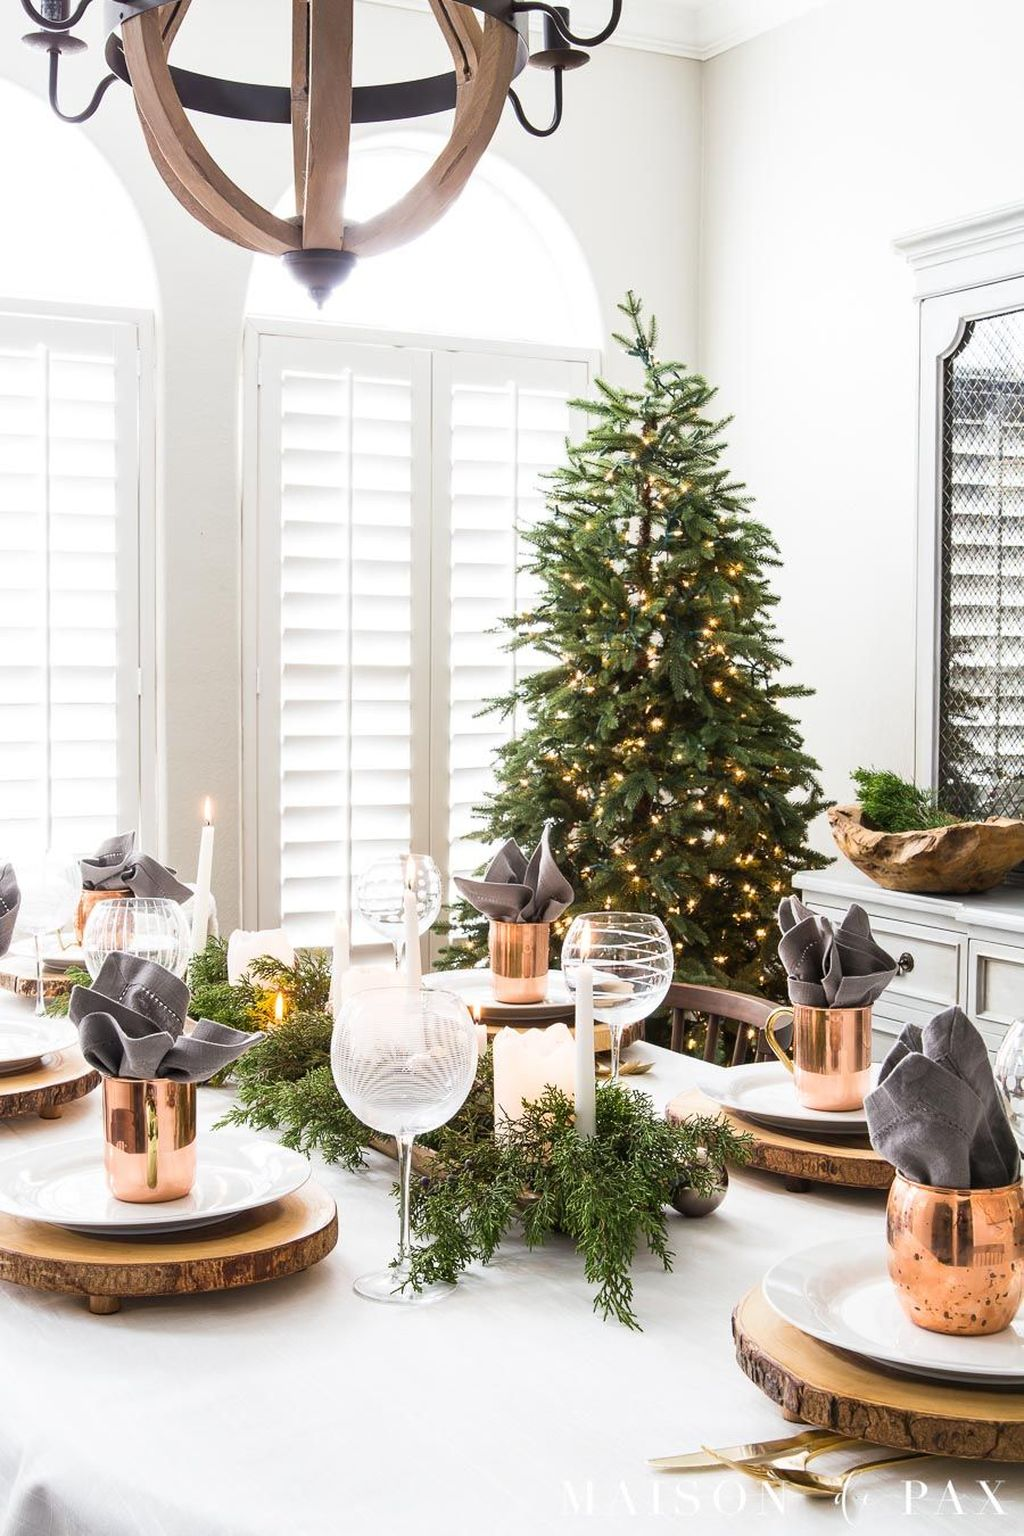 Beautiful Christmas Dining Room Decor Ideas You Never Seen Before 23